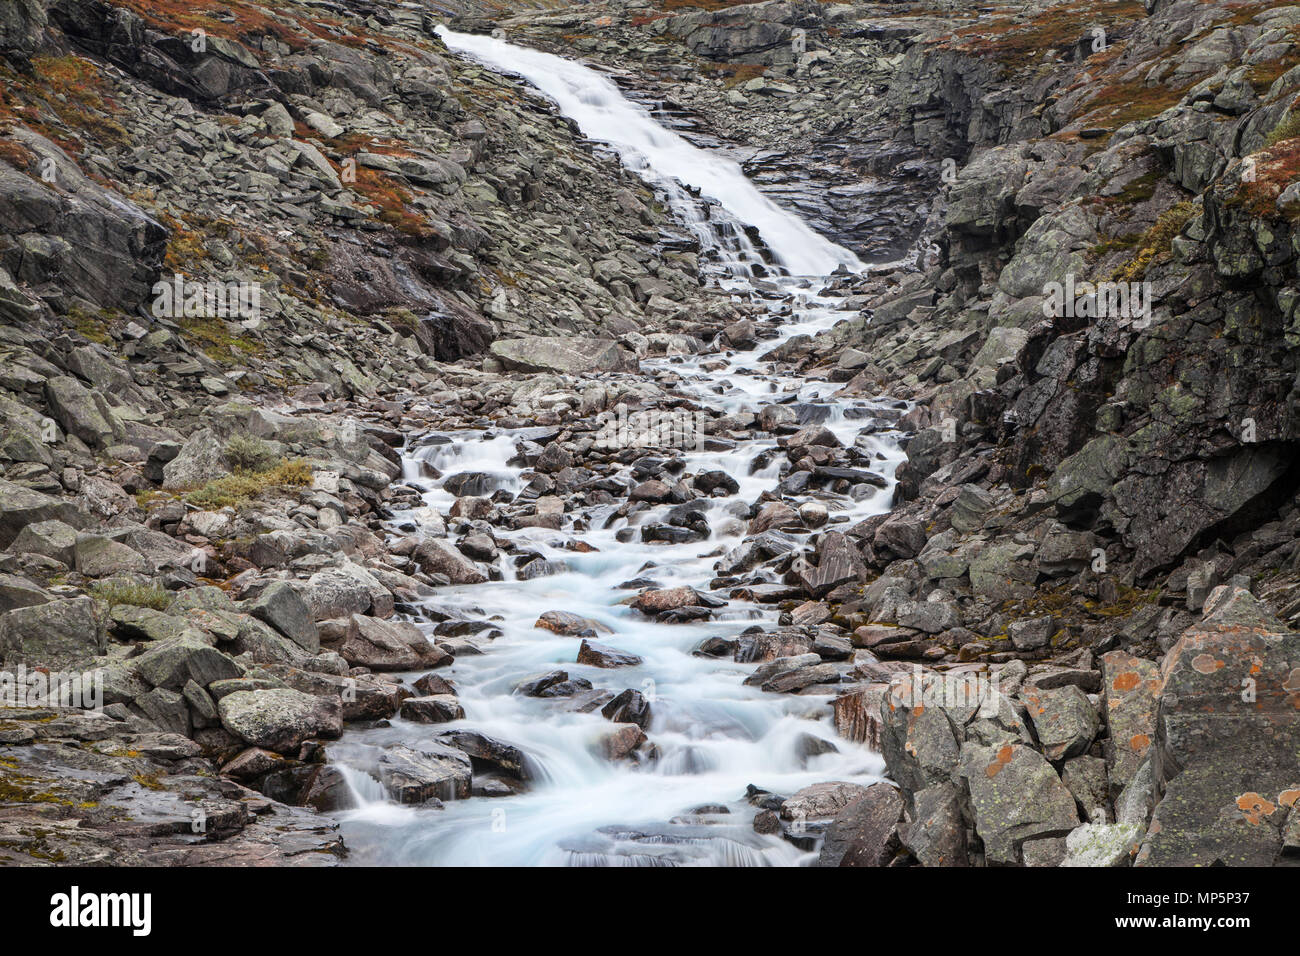 Cascade on the Videdola river seen from the Gamle Strynefjellsvegen Route, Norway. Stock Photo